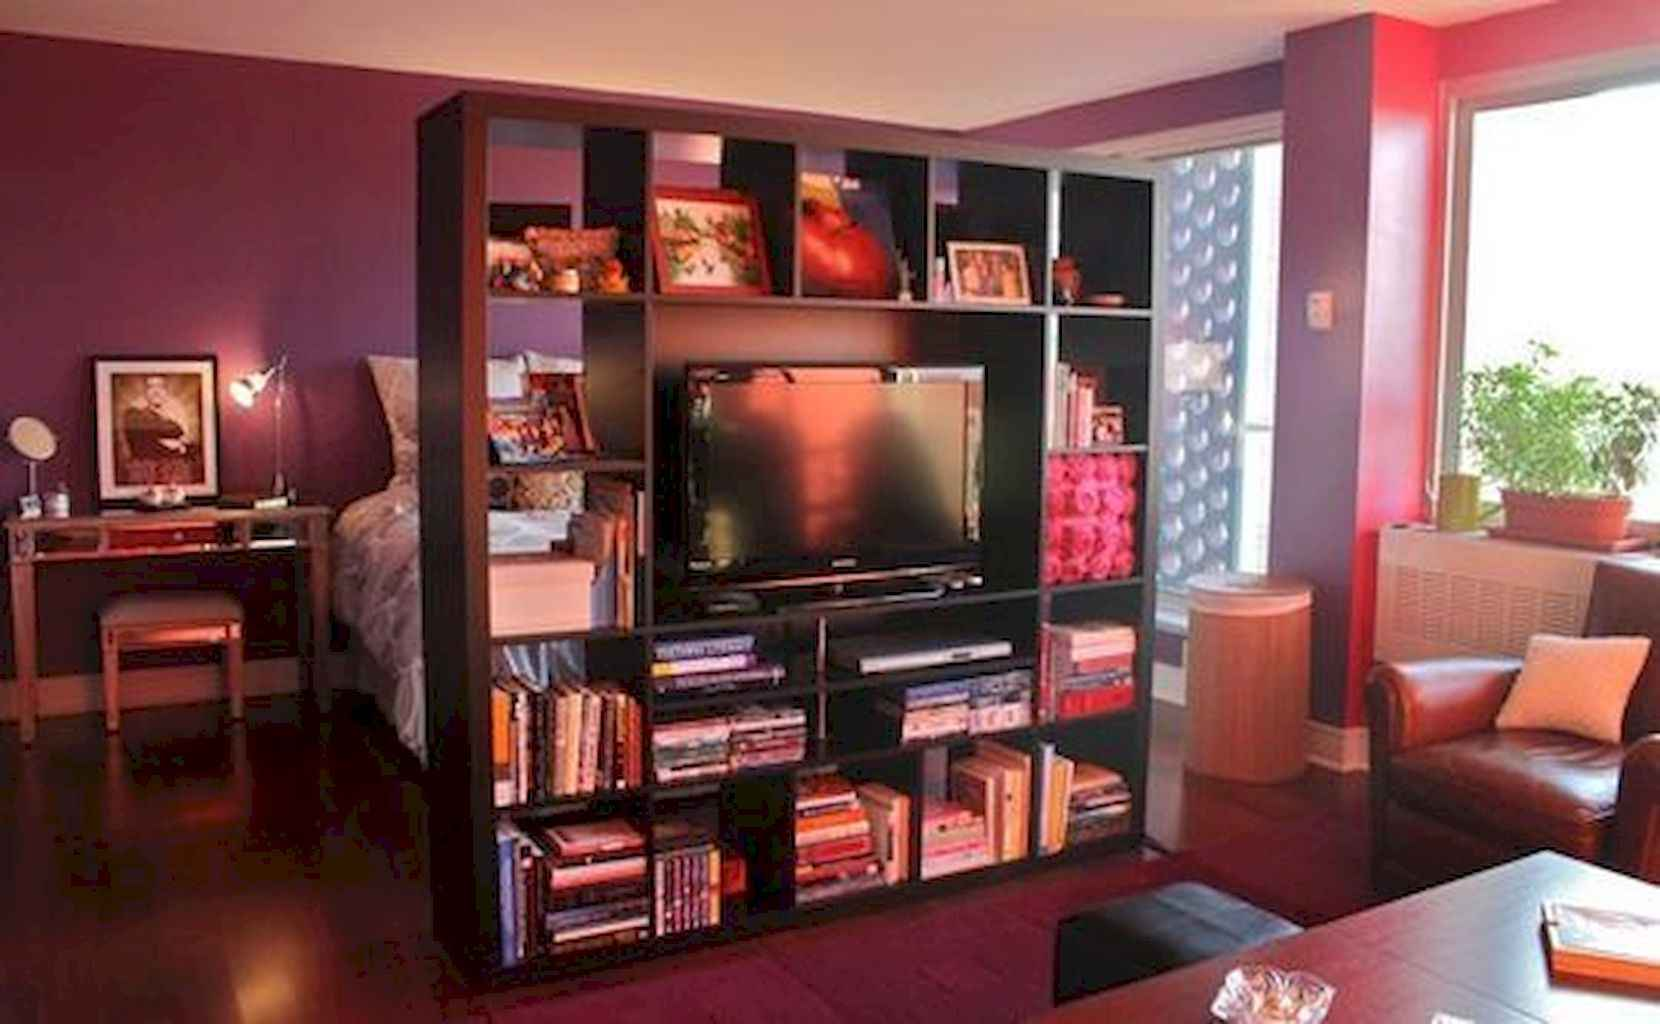 Cool small apartment decorating ideas on a budget (57)